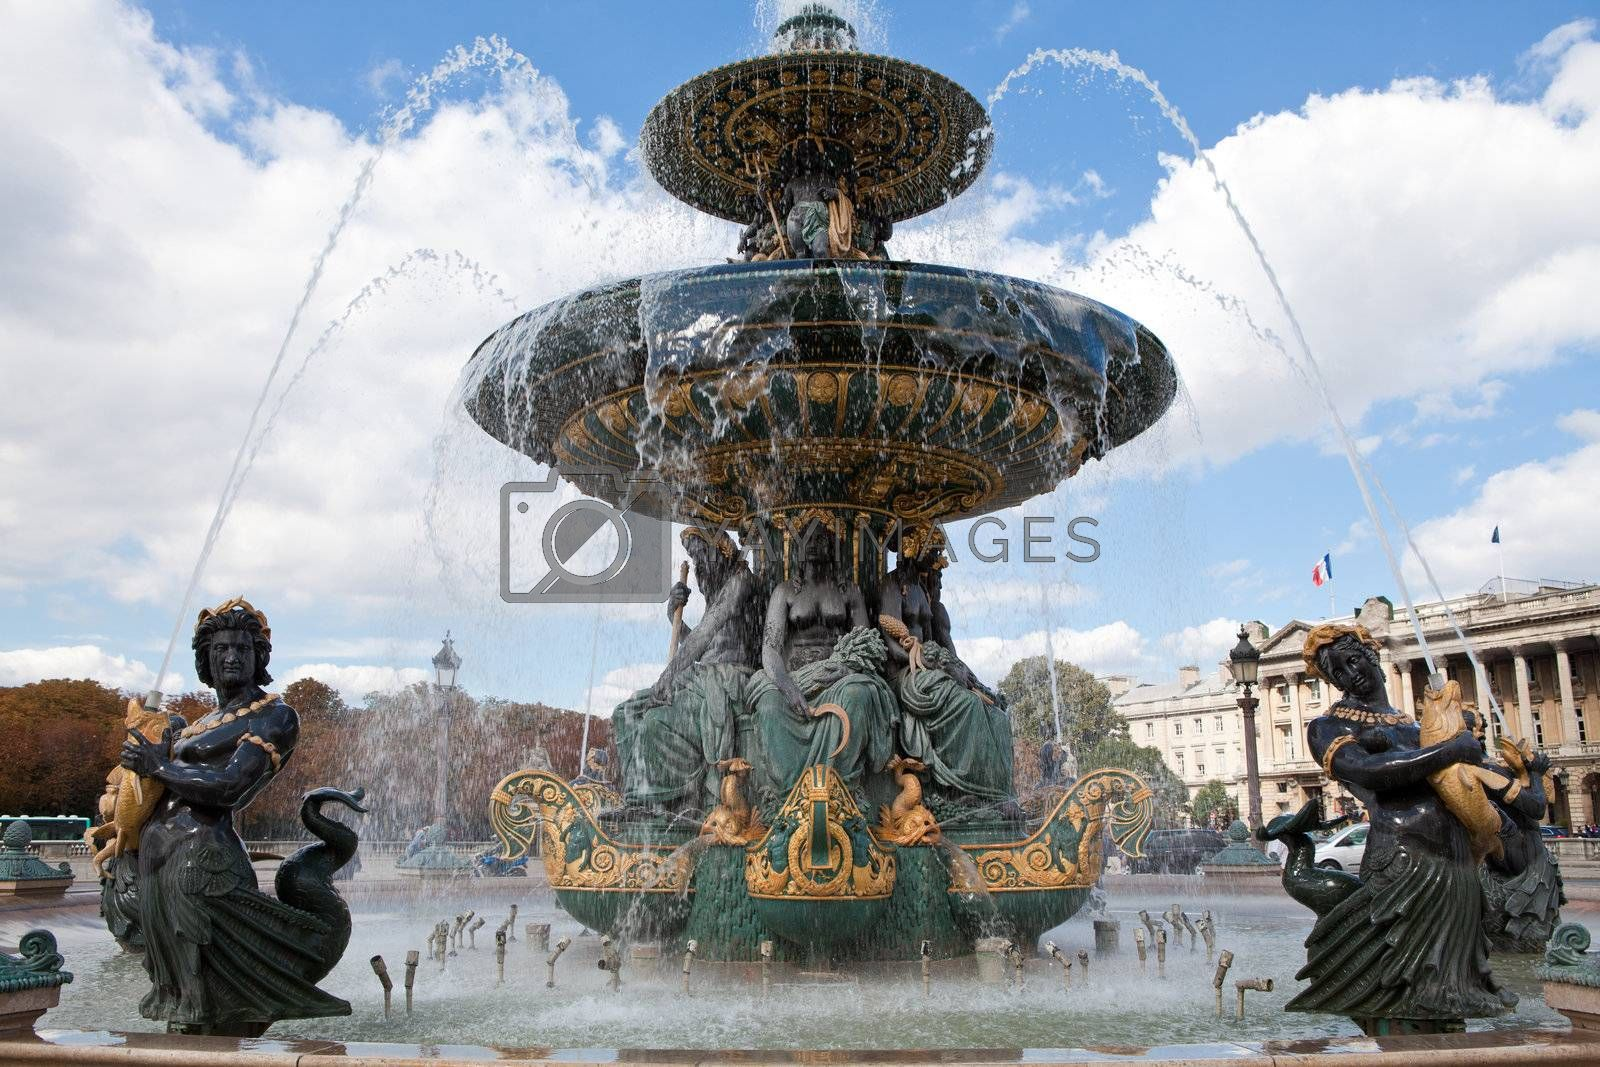 Landmark famous sculptural fountain of River Commerce and Navigation on the Place de la Concorde in Paris France on the cloudy sky background